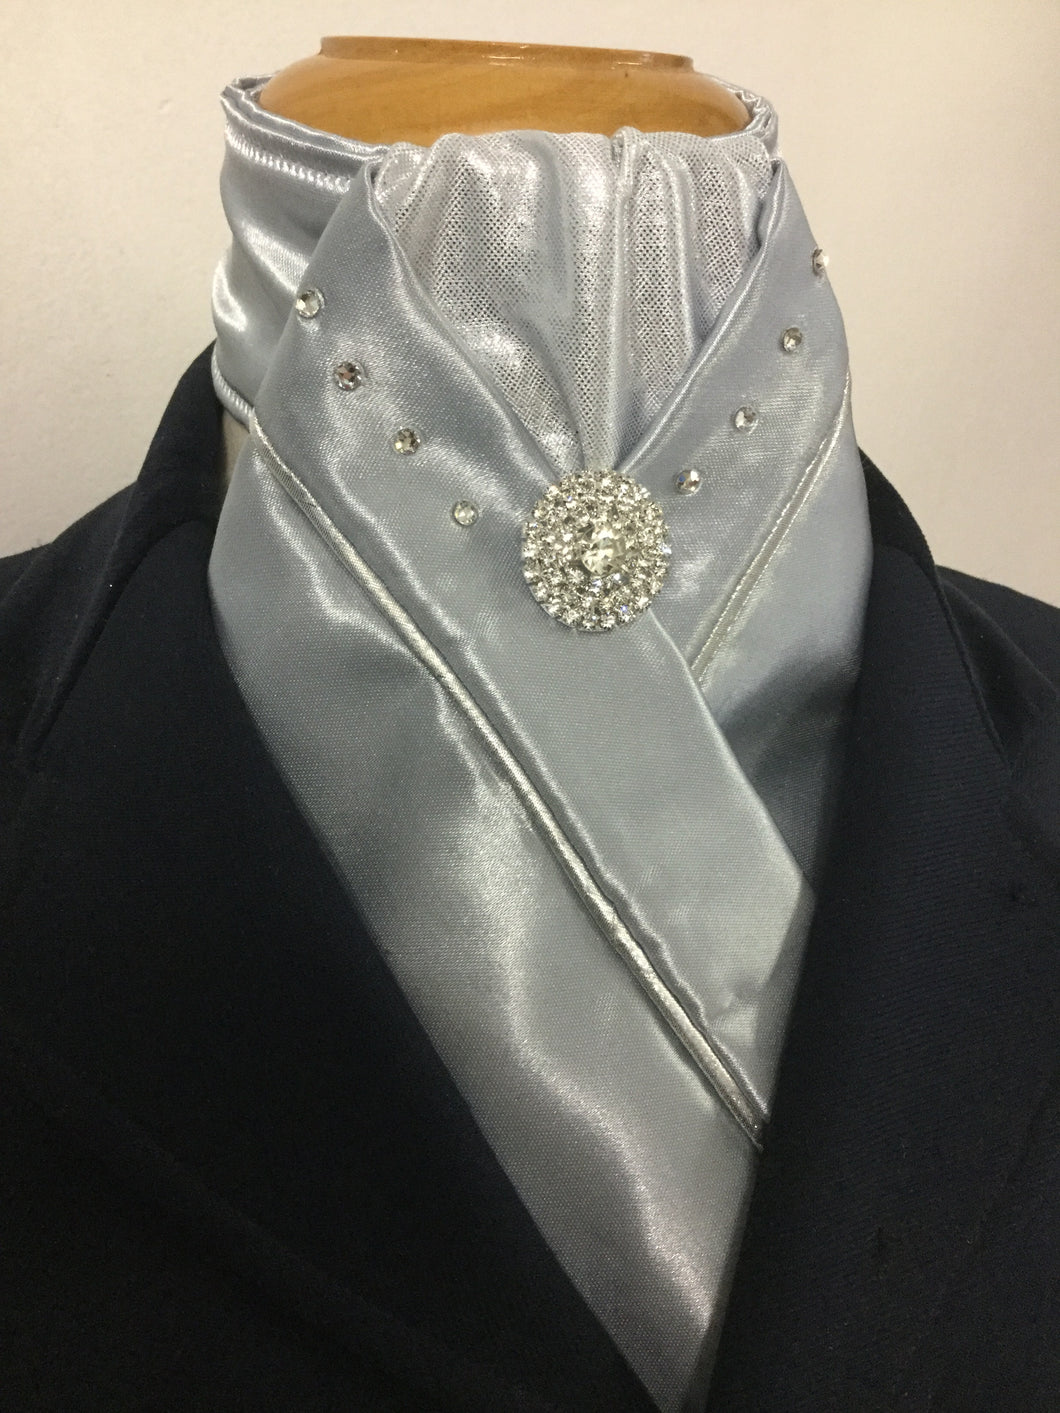 HHD Custom Equestrian Stock Tie in Silver Blue 'Becky' with Swarovski Elegance